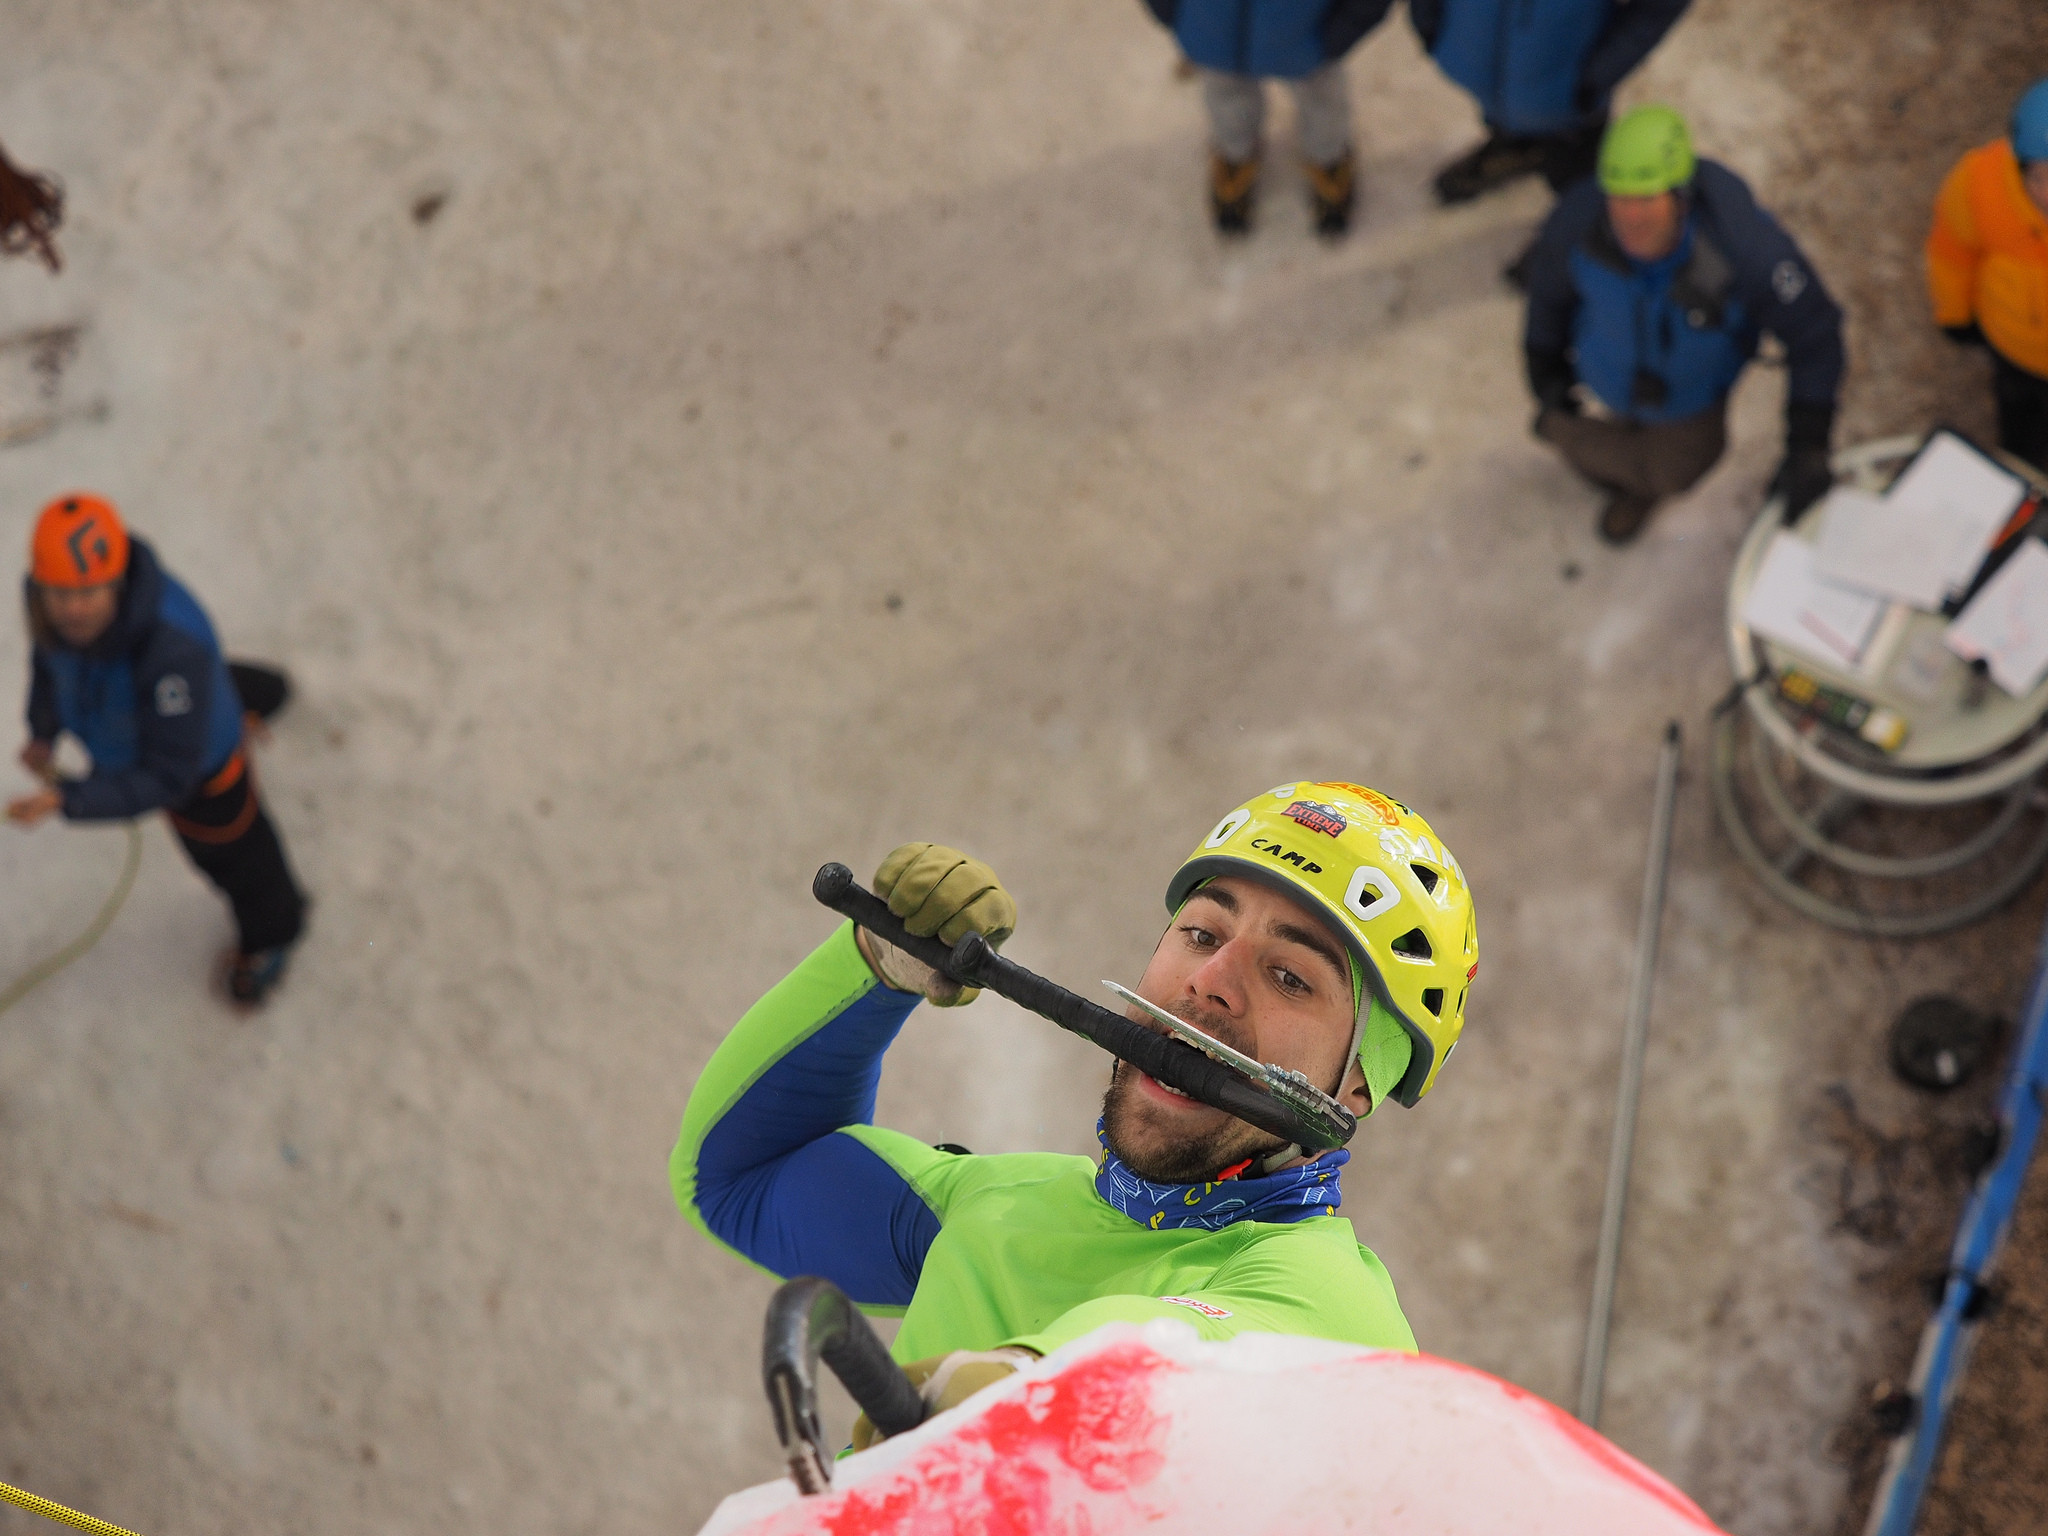 Lead finals conclude Ice Climbing World Cup in Switzerland